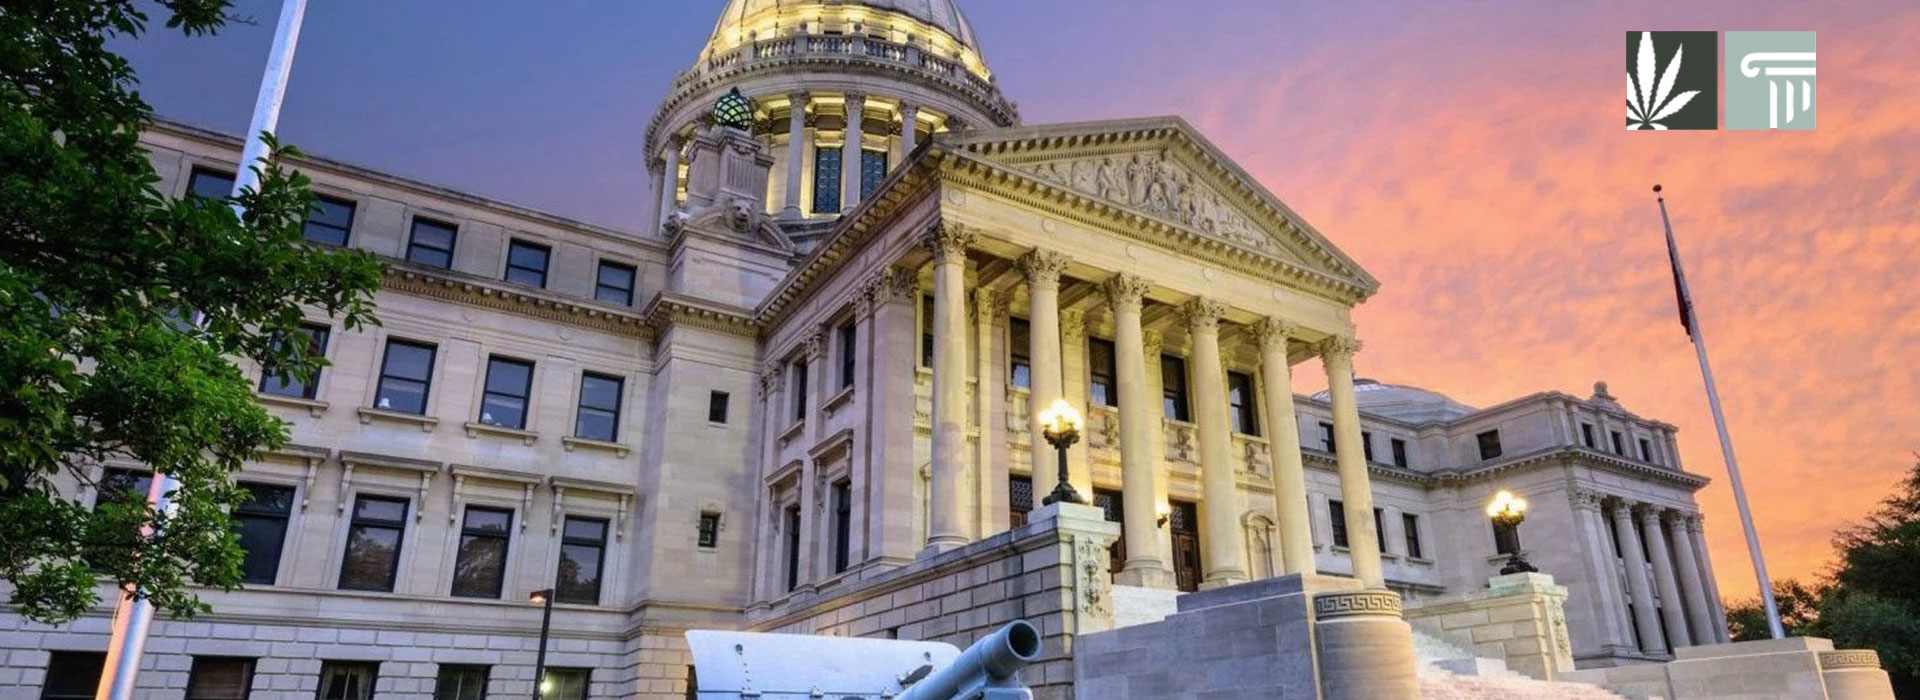 mississippi could legalize medical marijuana in special session